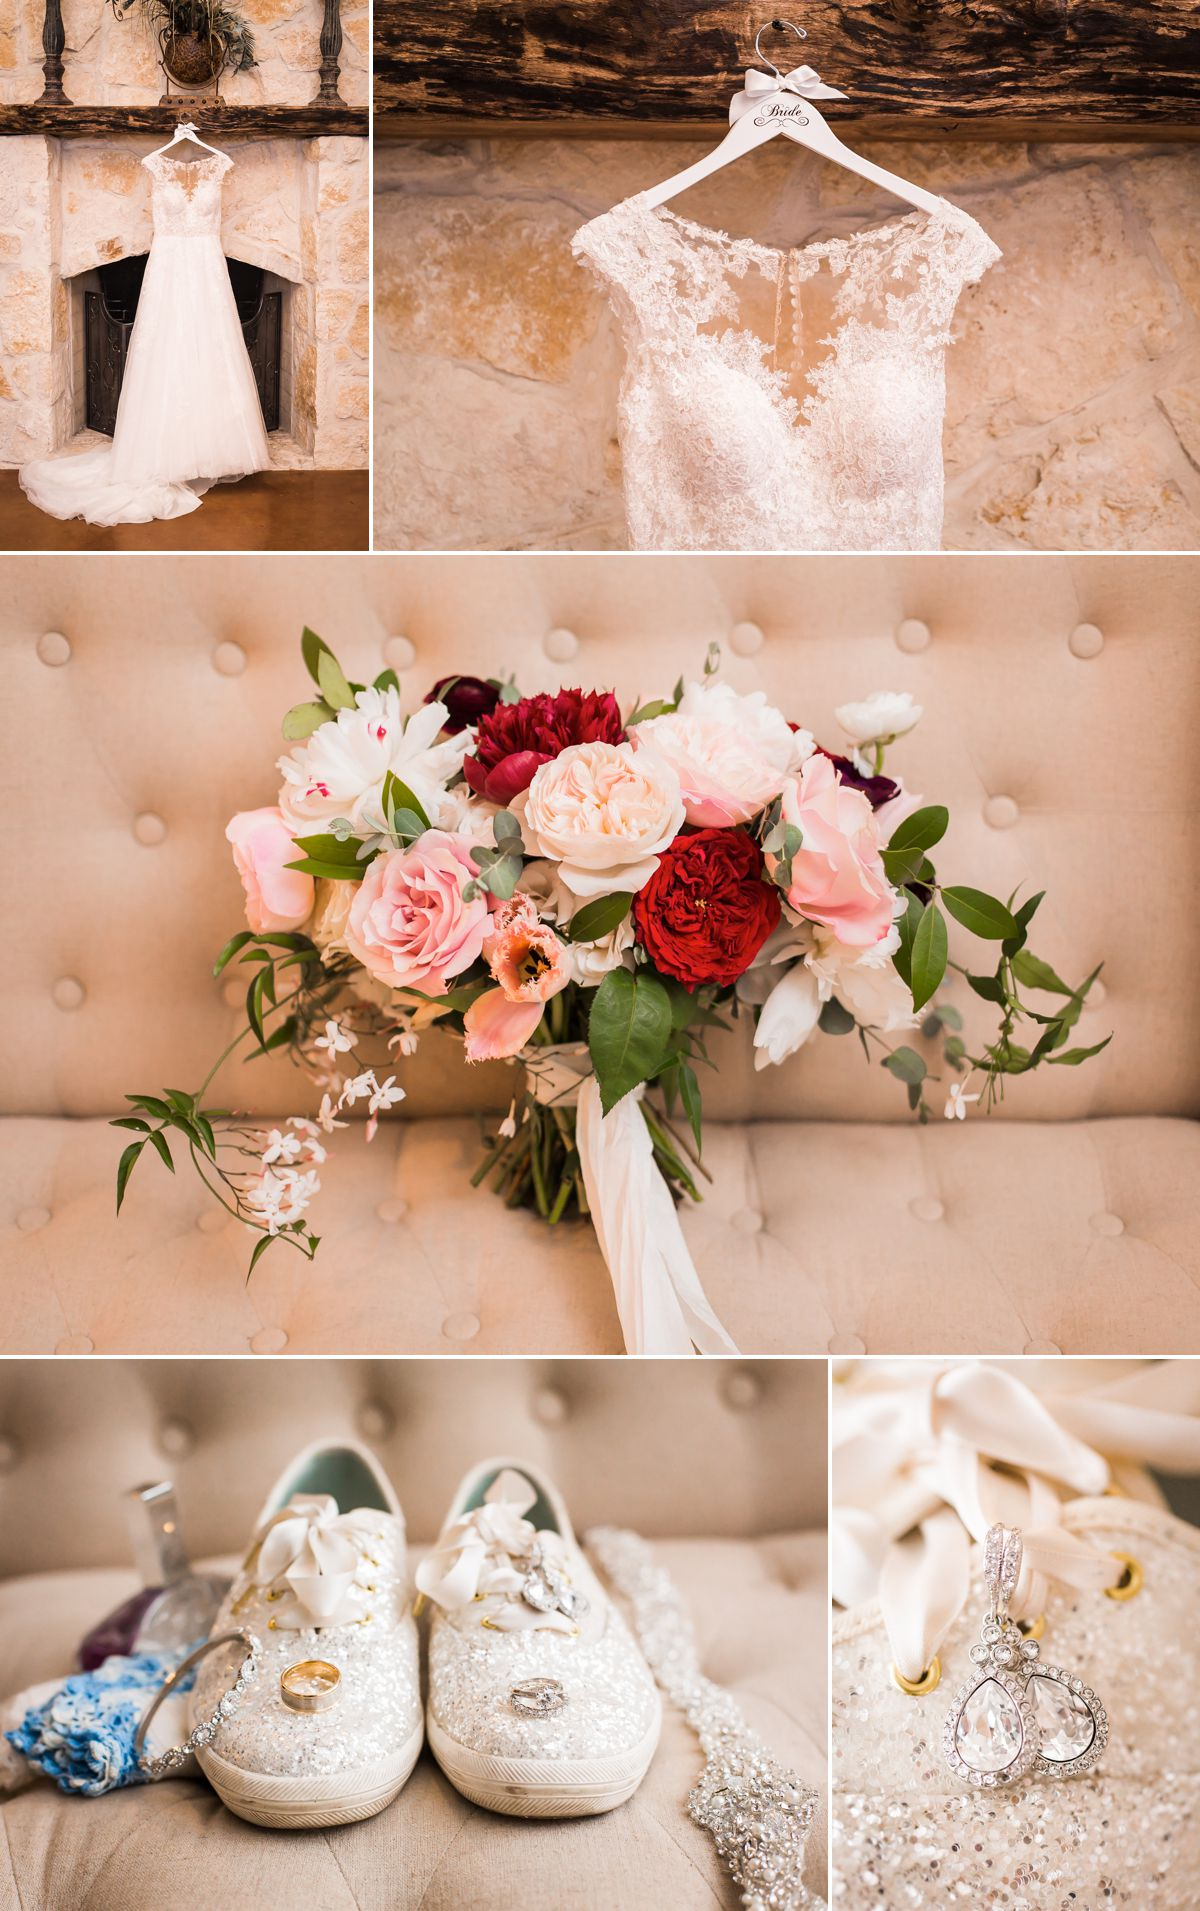 Balmorhea Wedding Dress and Details